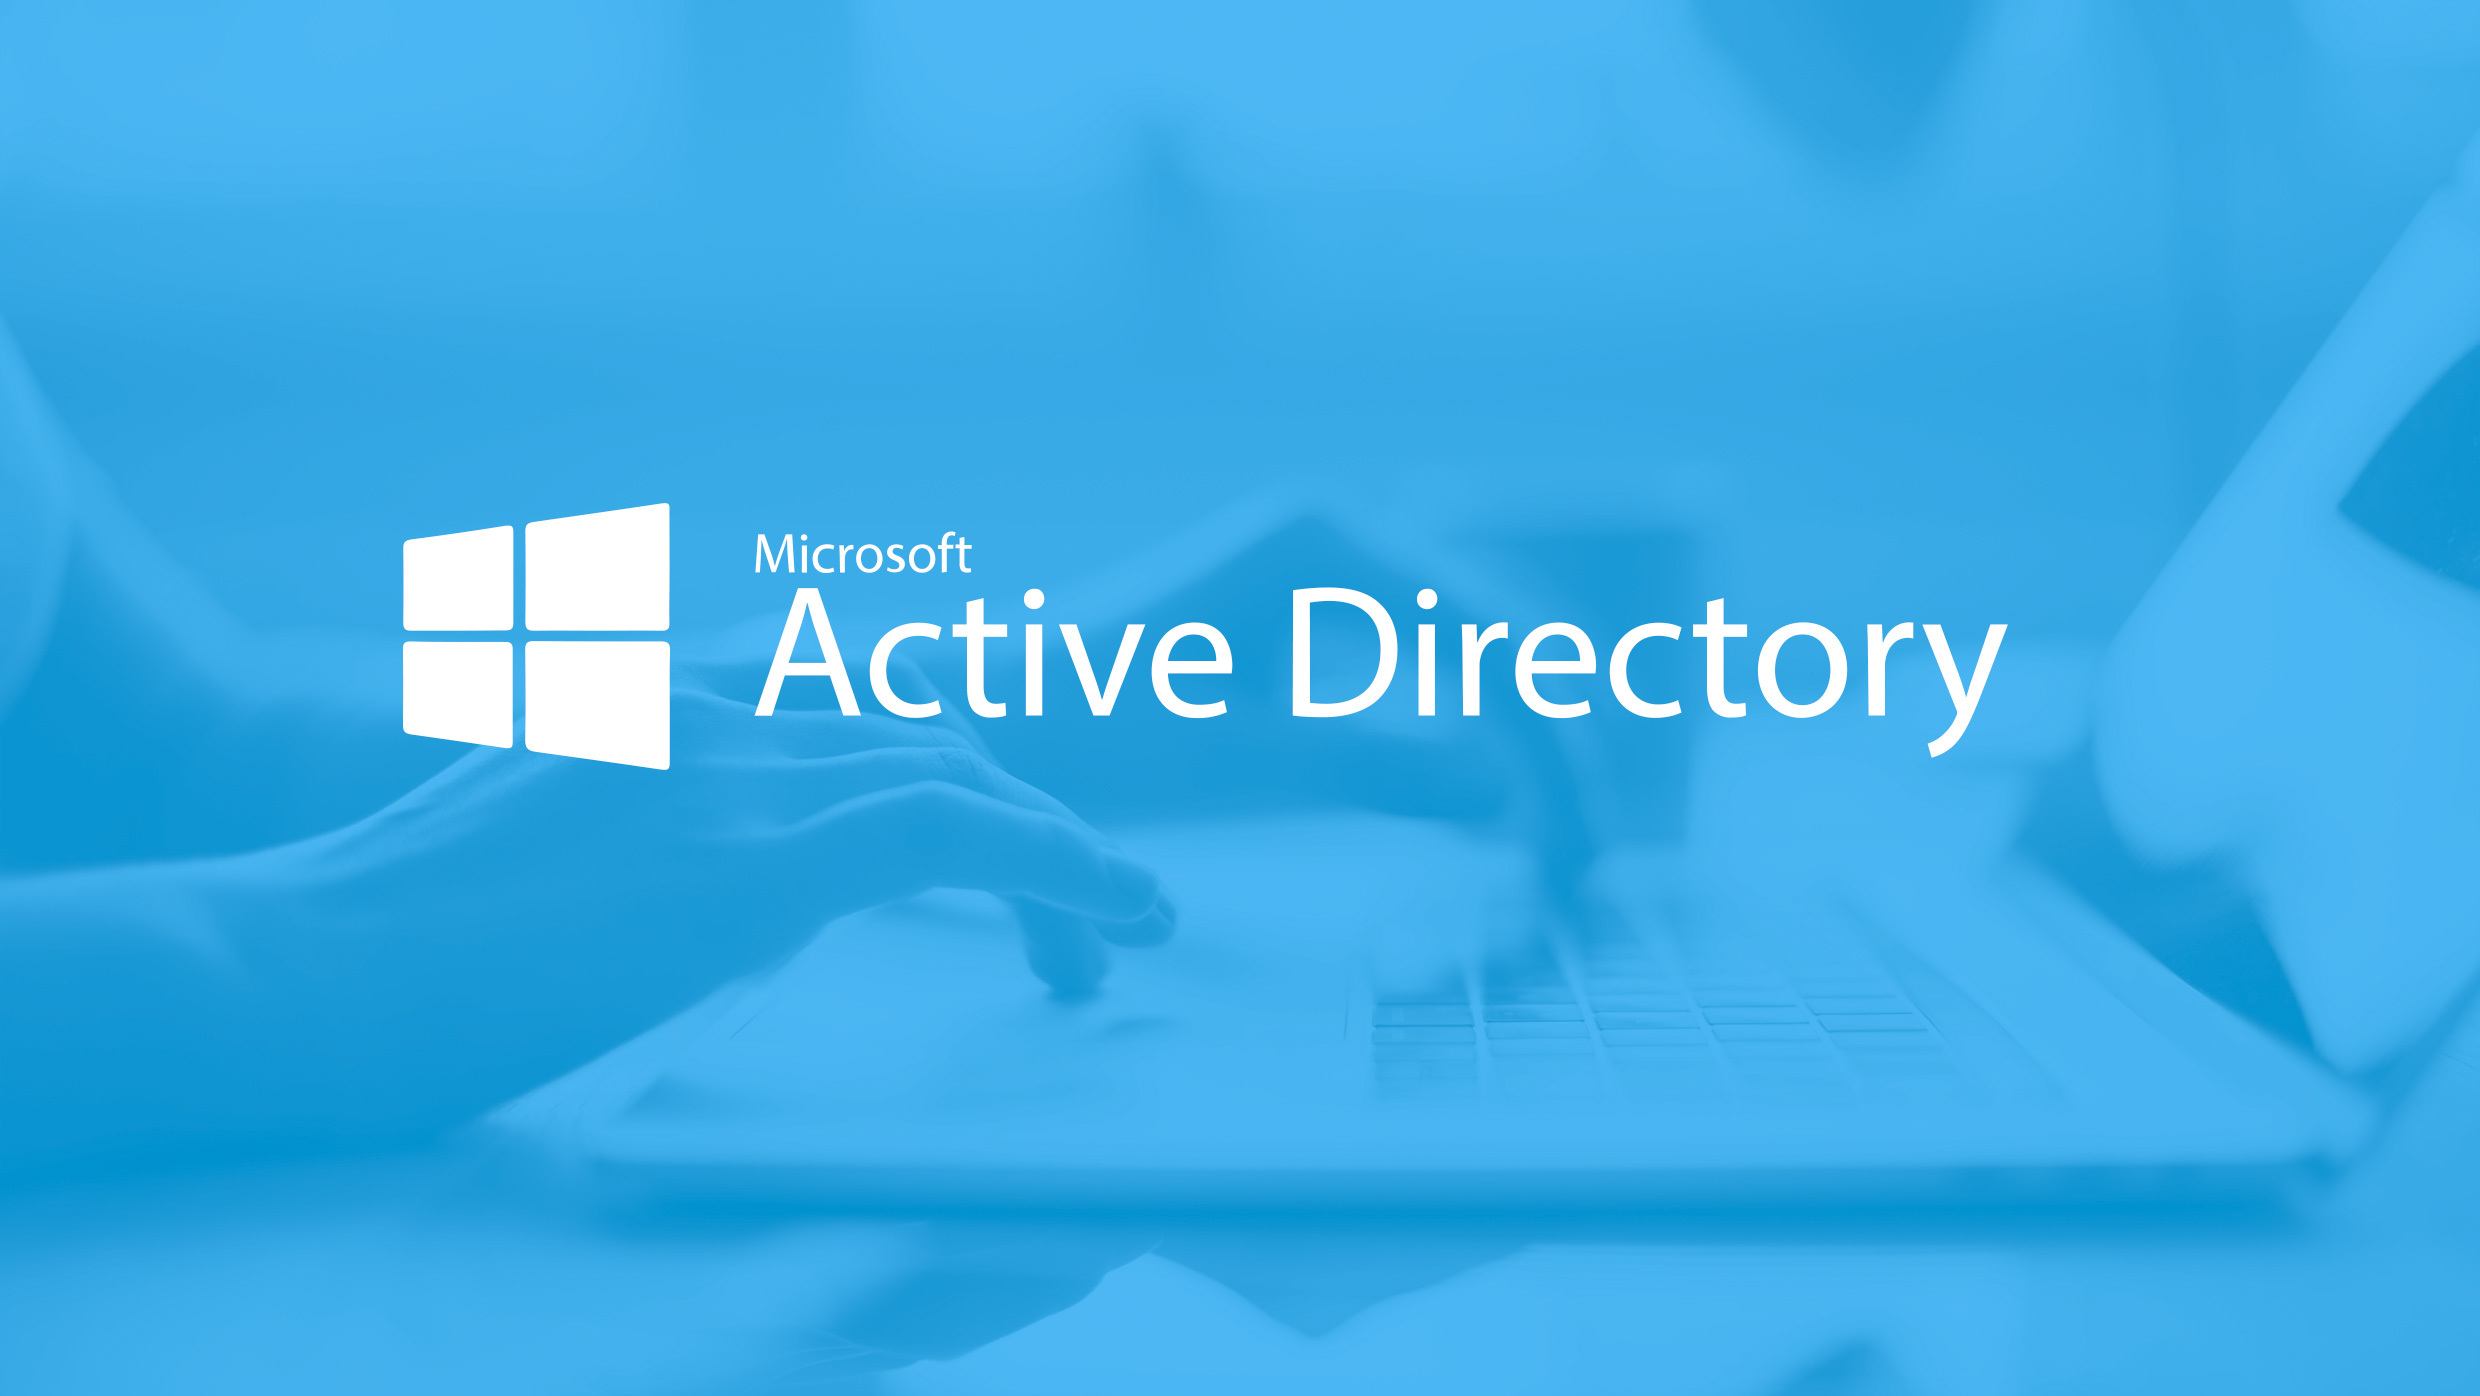 Introducing integration with Microsoft Active Directory for easier user management